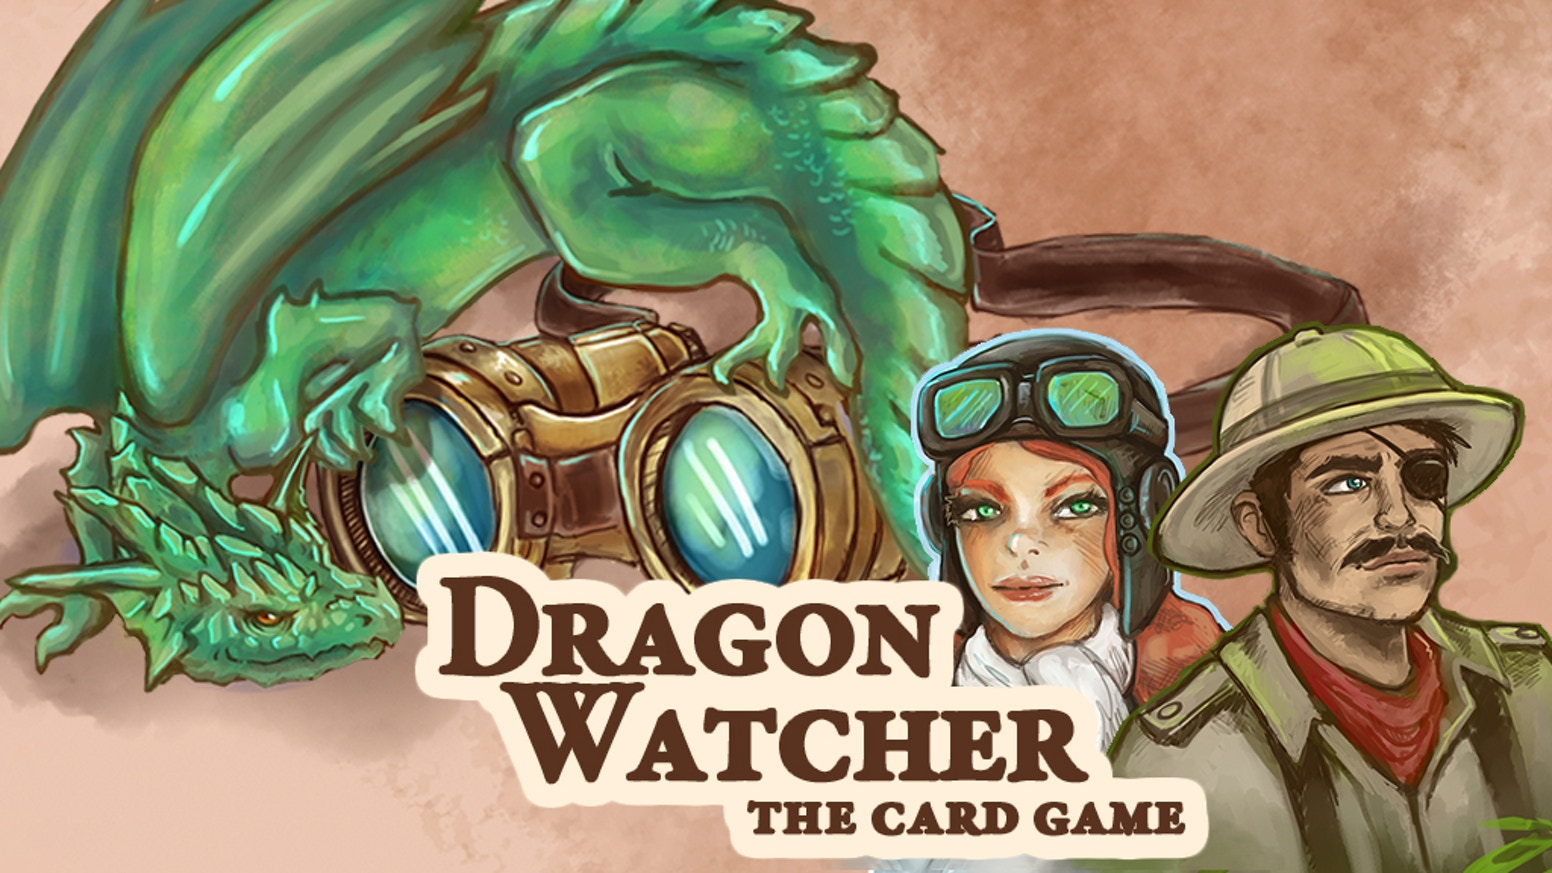 Collect dragons and use their abilities to hinder your opponents as you race to become the ultimate Dragon Watcher!